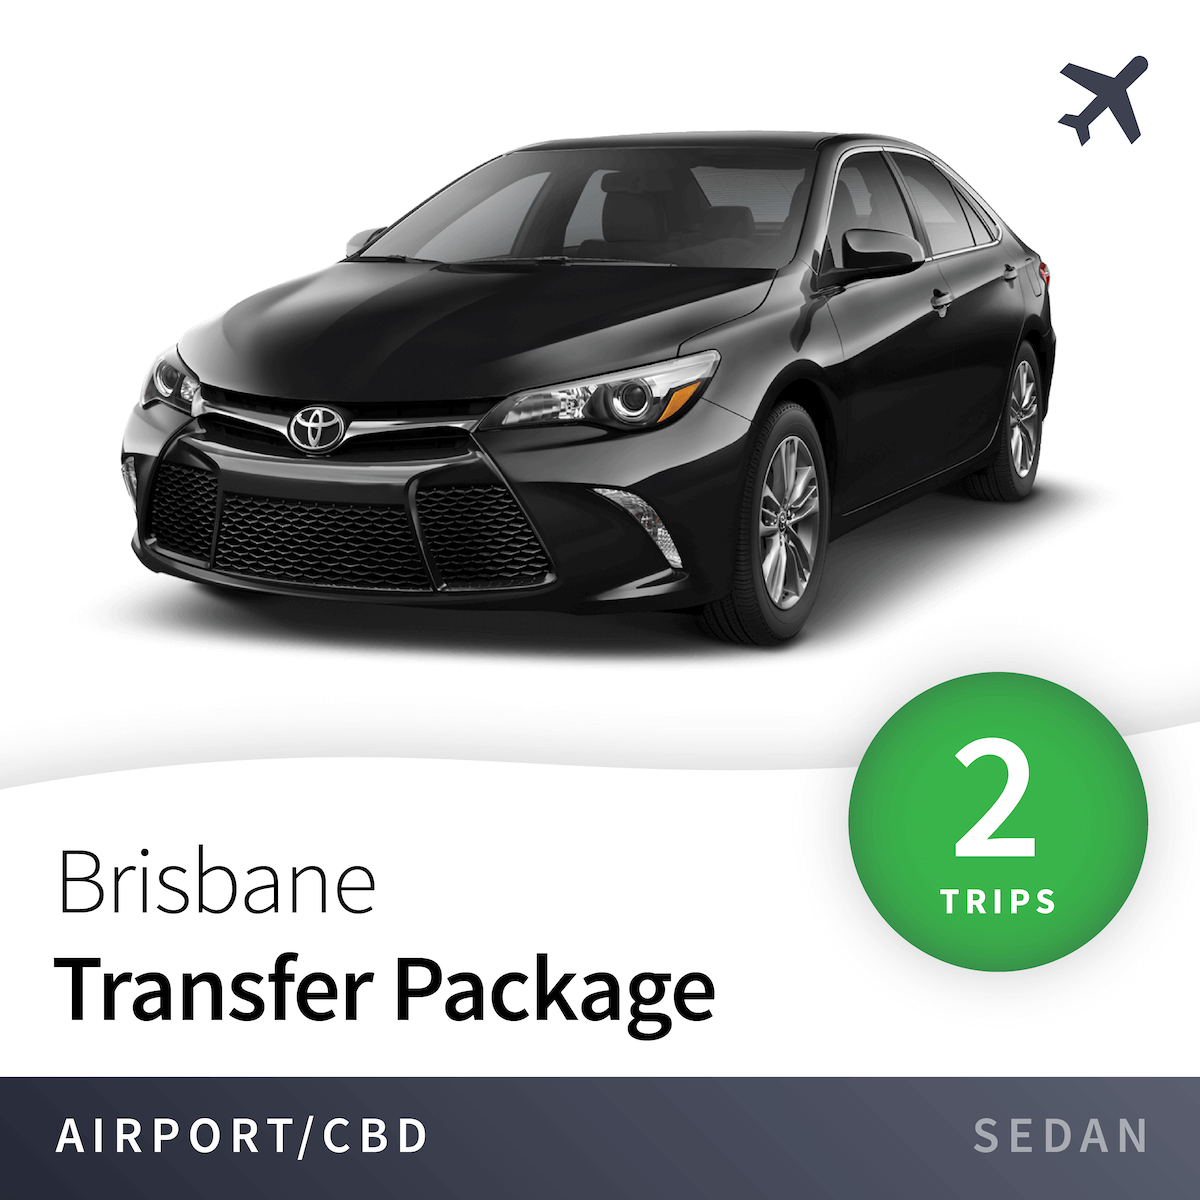 Brisbane Airport Transfer Package - Sedan (2 Trips) 9